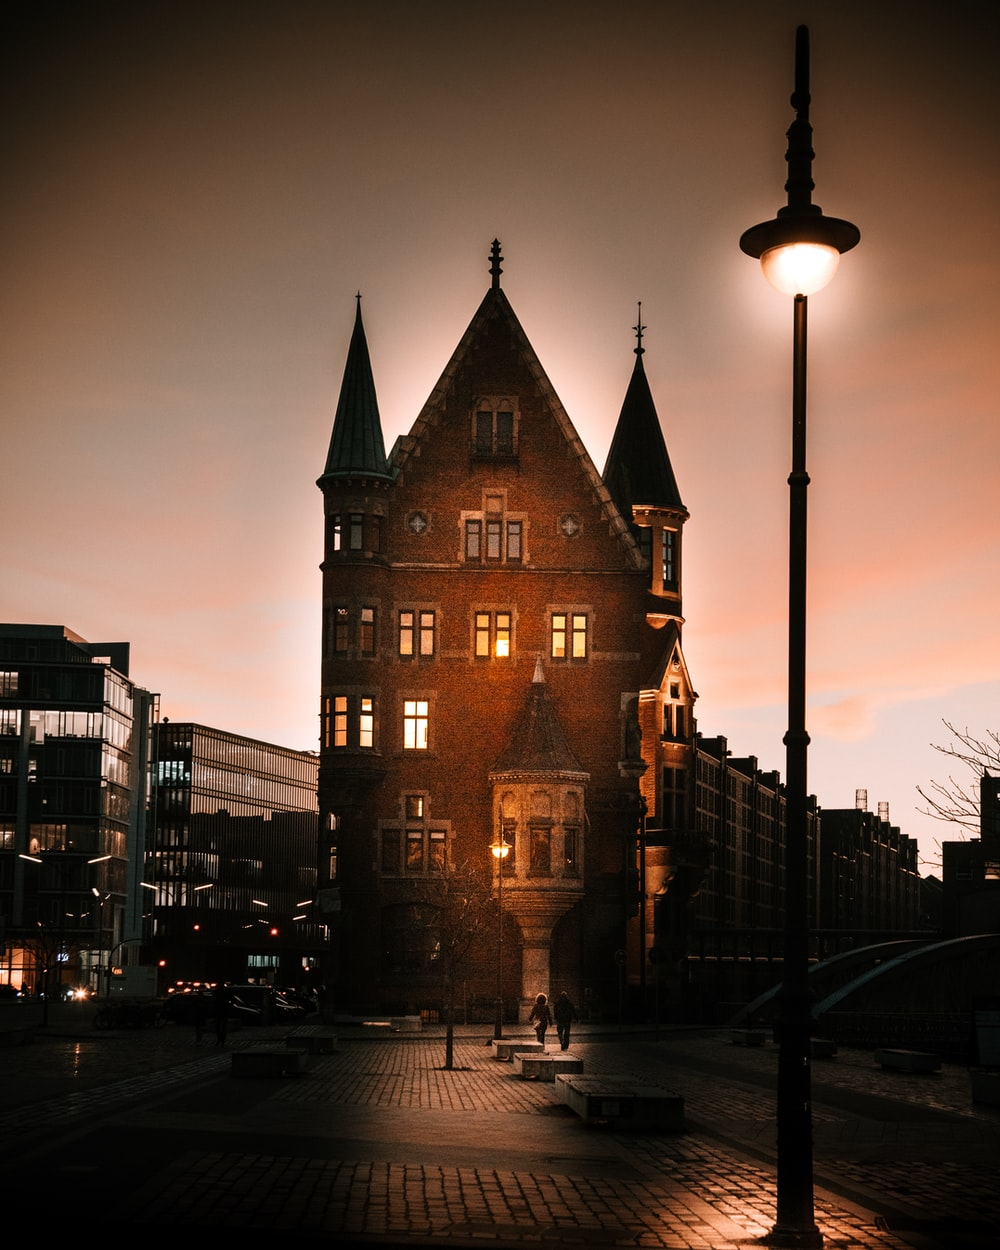 brown building during golden hour